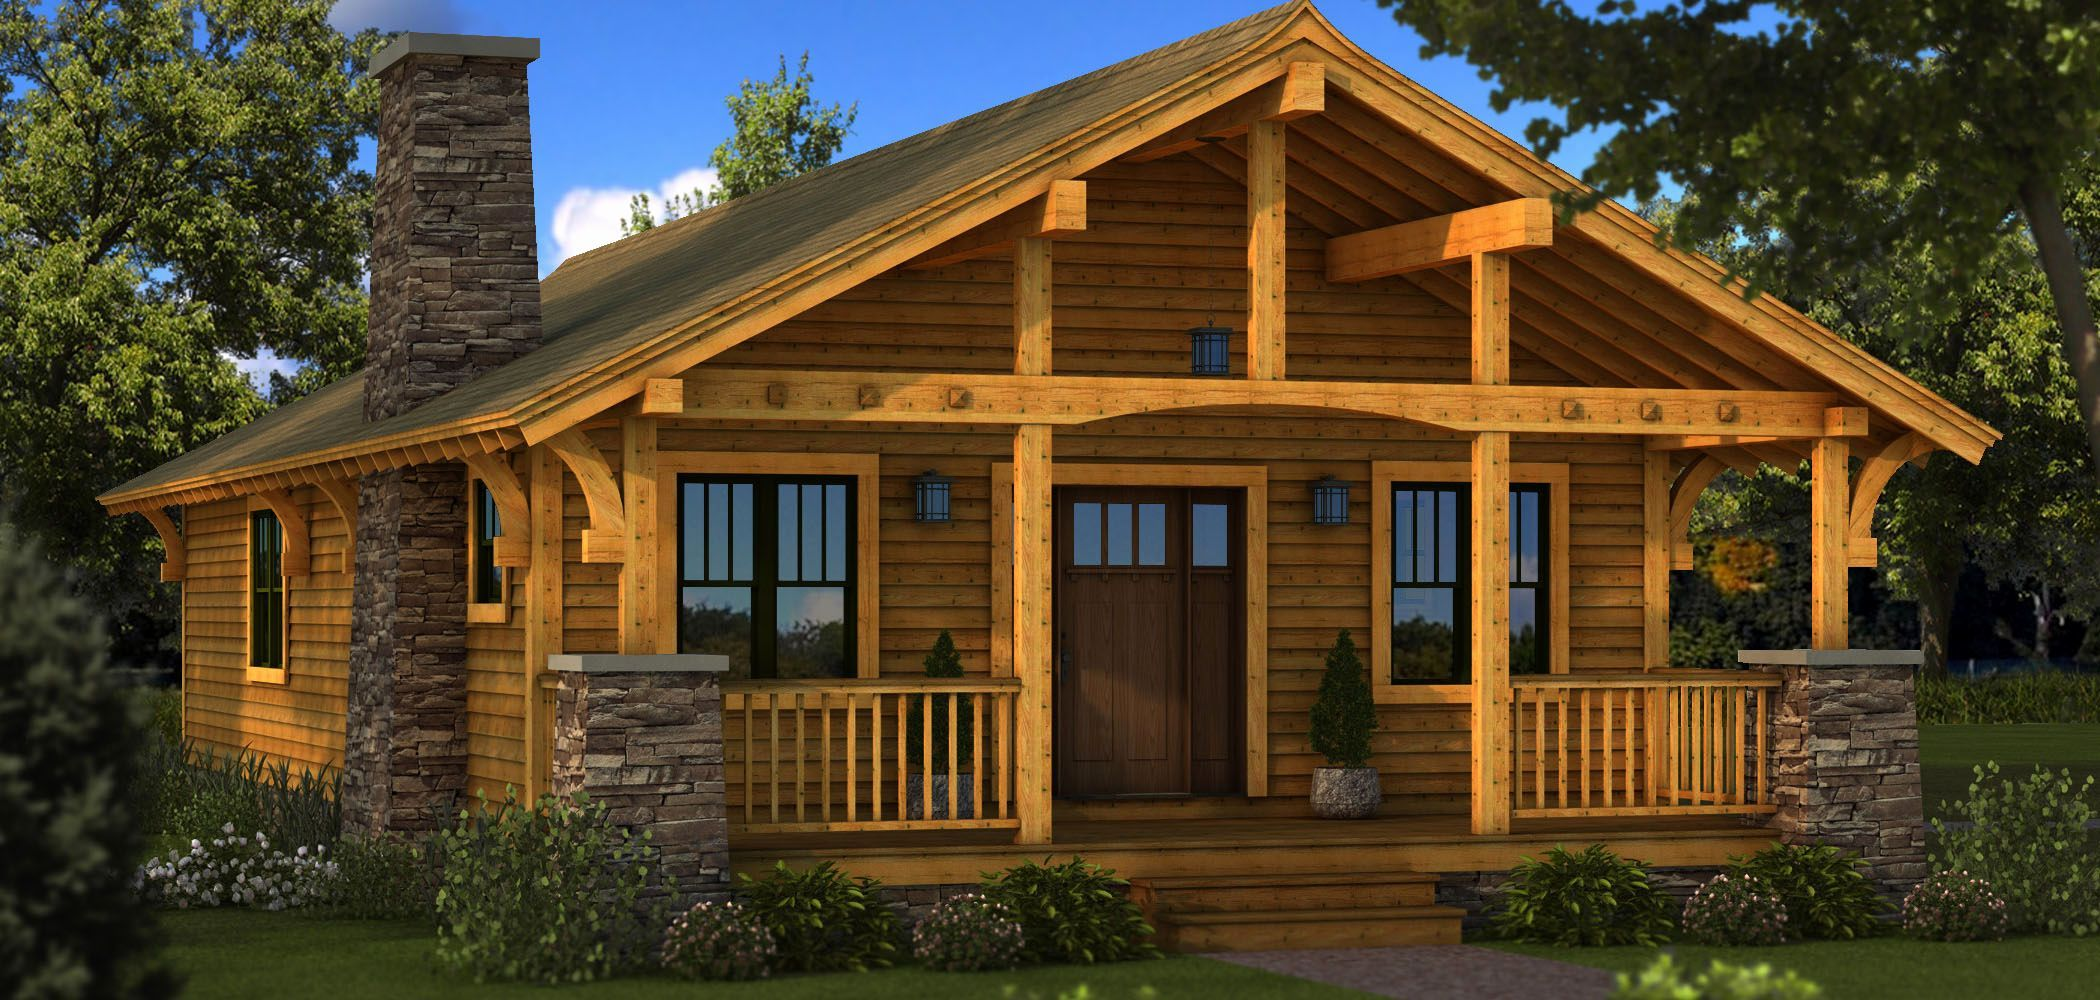 One Story Shed Roof House Plans Beautiful Small Rustic Log Cabins Cabin Homes Plans E Story Home Art Decor Cabin Kit Homes Small Log Homes Log Cabin Plans